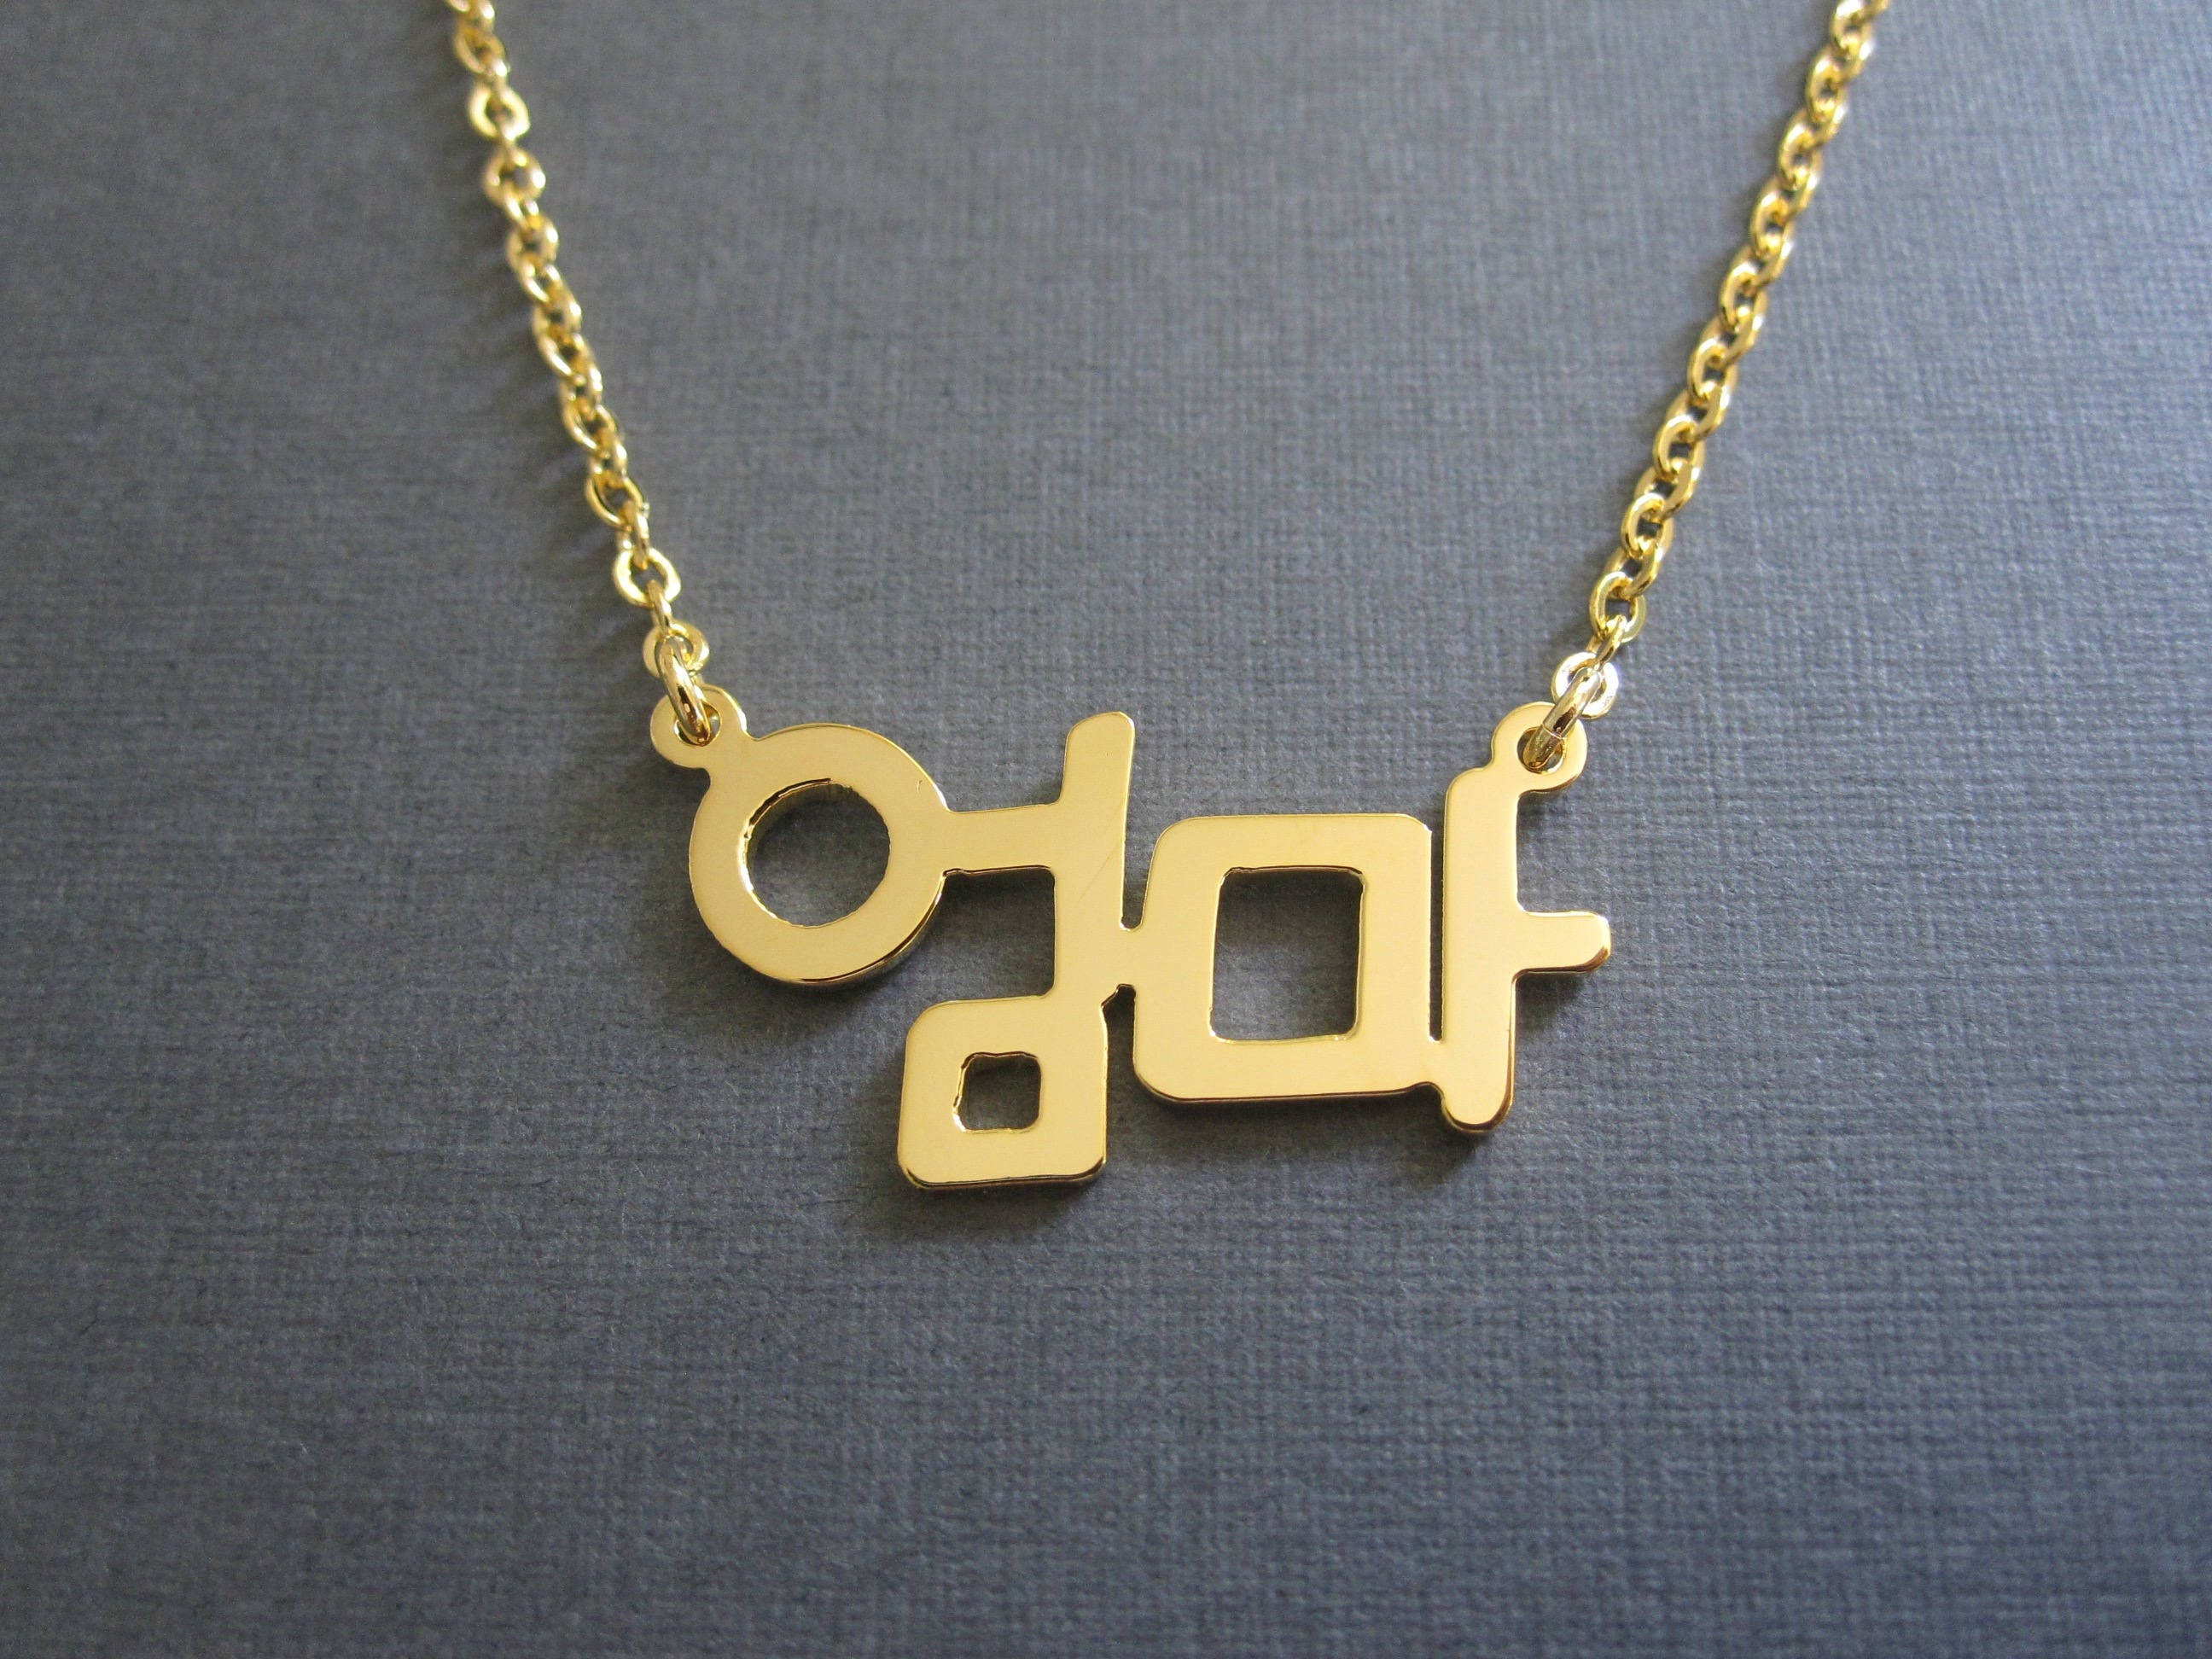 33905bc61a082 Personalized Gold Korean Name Necklace - Hangul Name Necklace - Korean  Necklace - Korean Jewelry - Custom Name Gift - Hangul